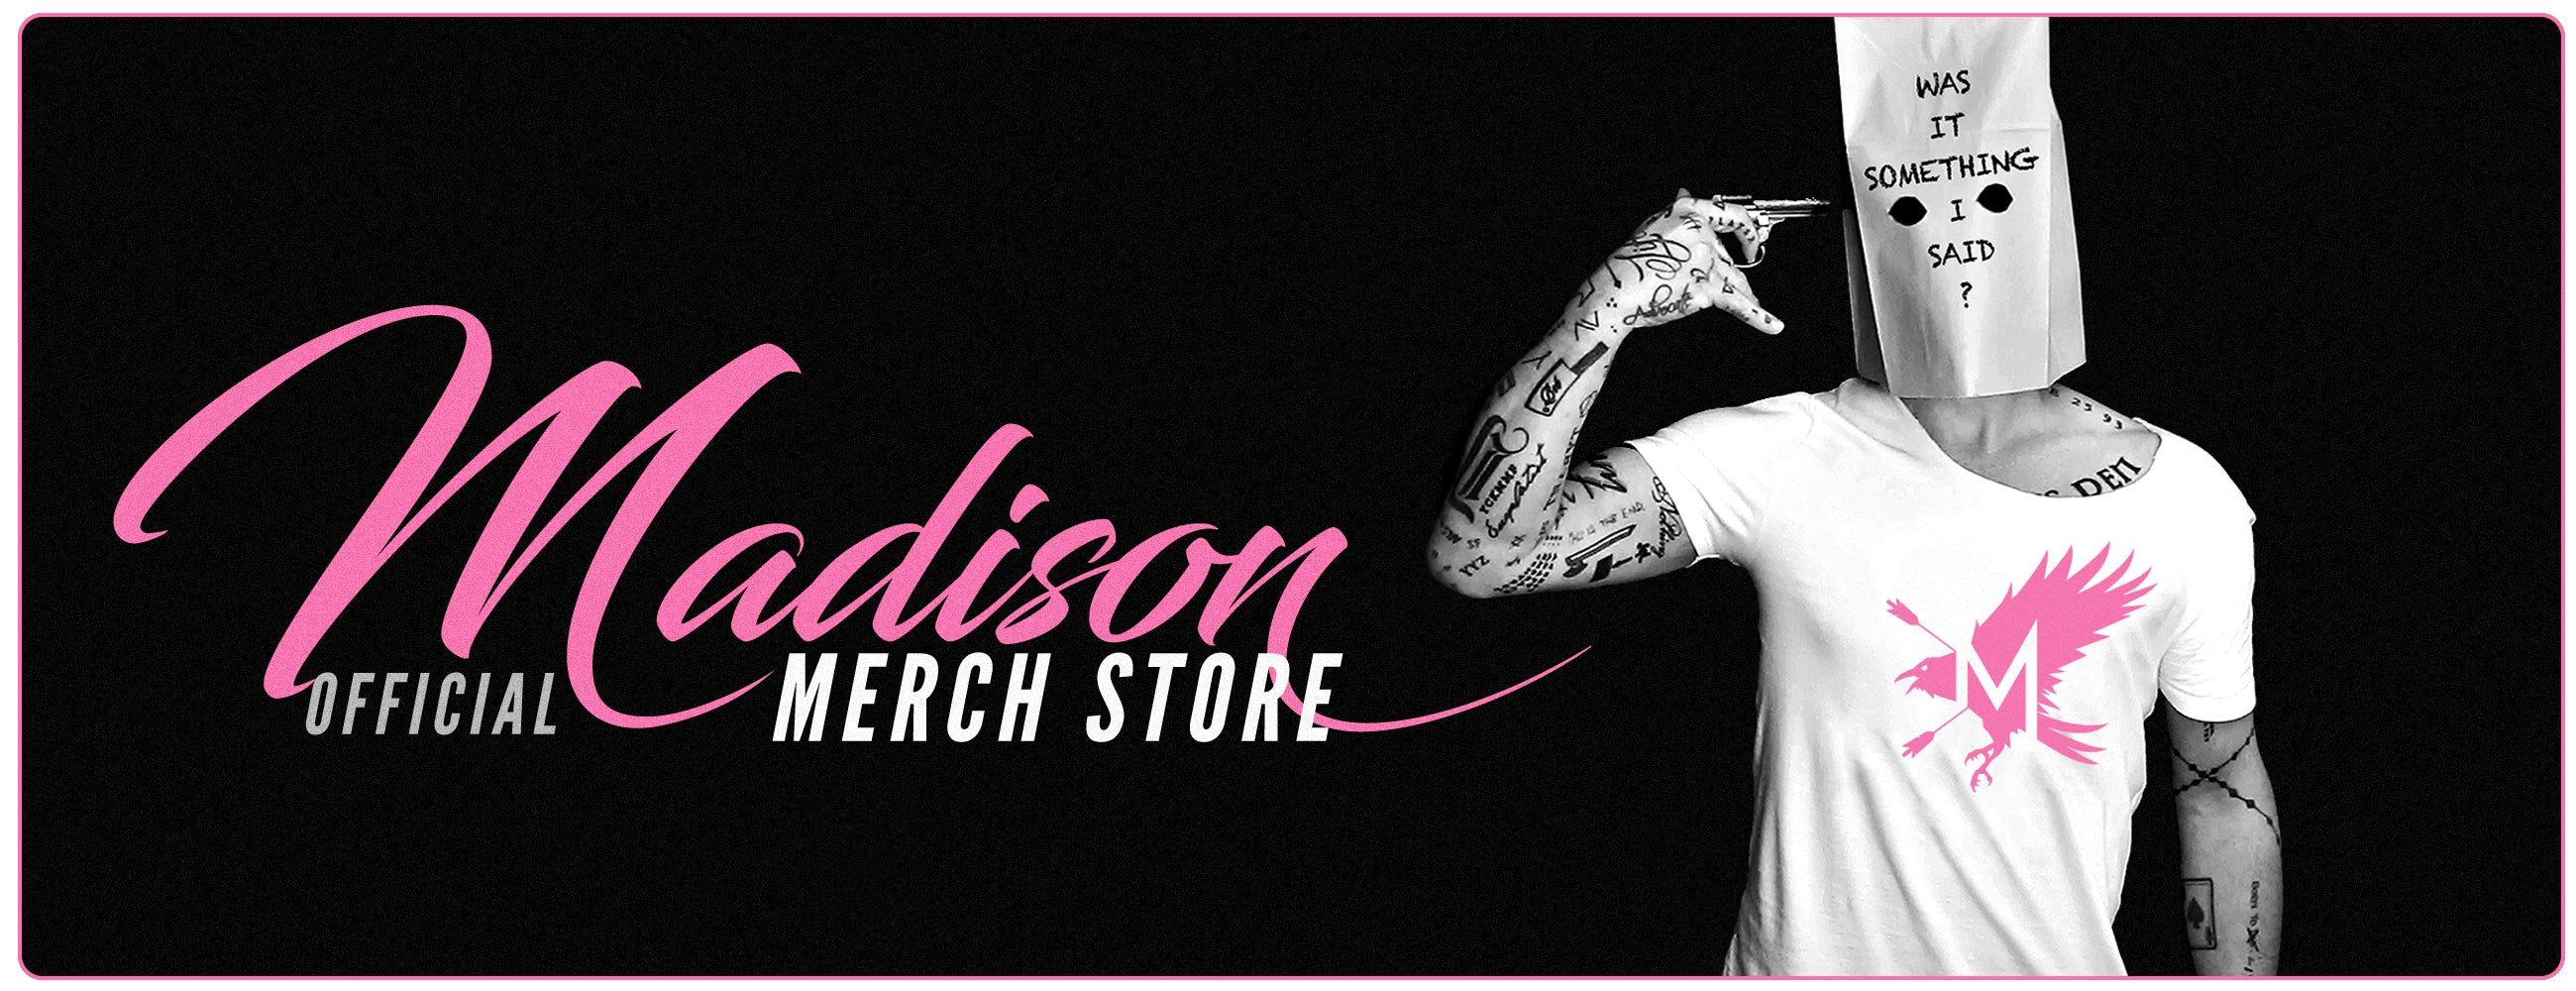 OFFICIAL DANIEL MADISON MERCH SHIOP!